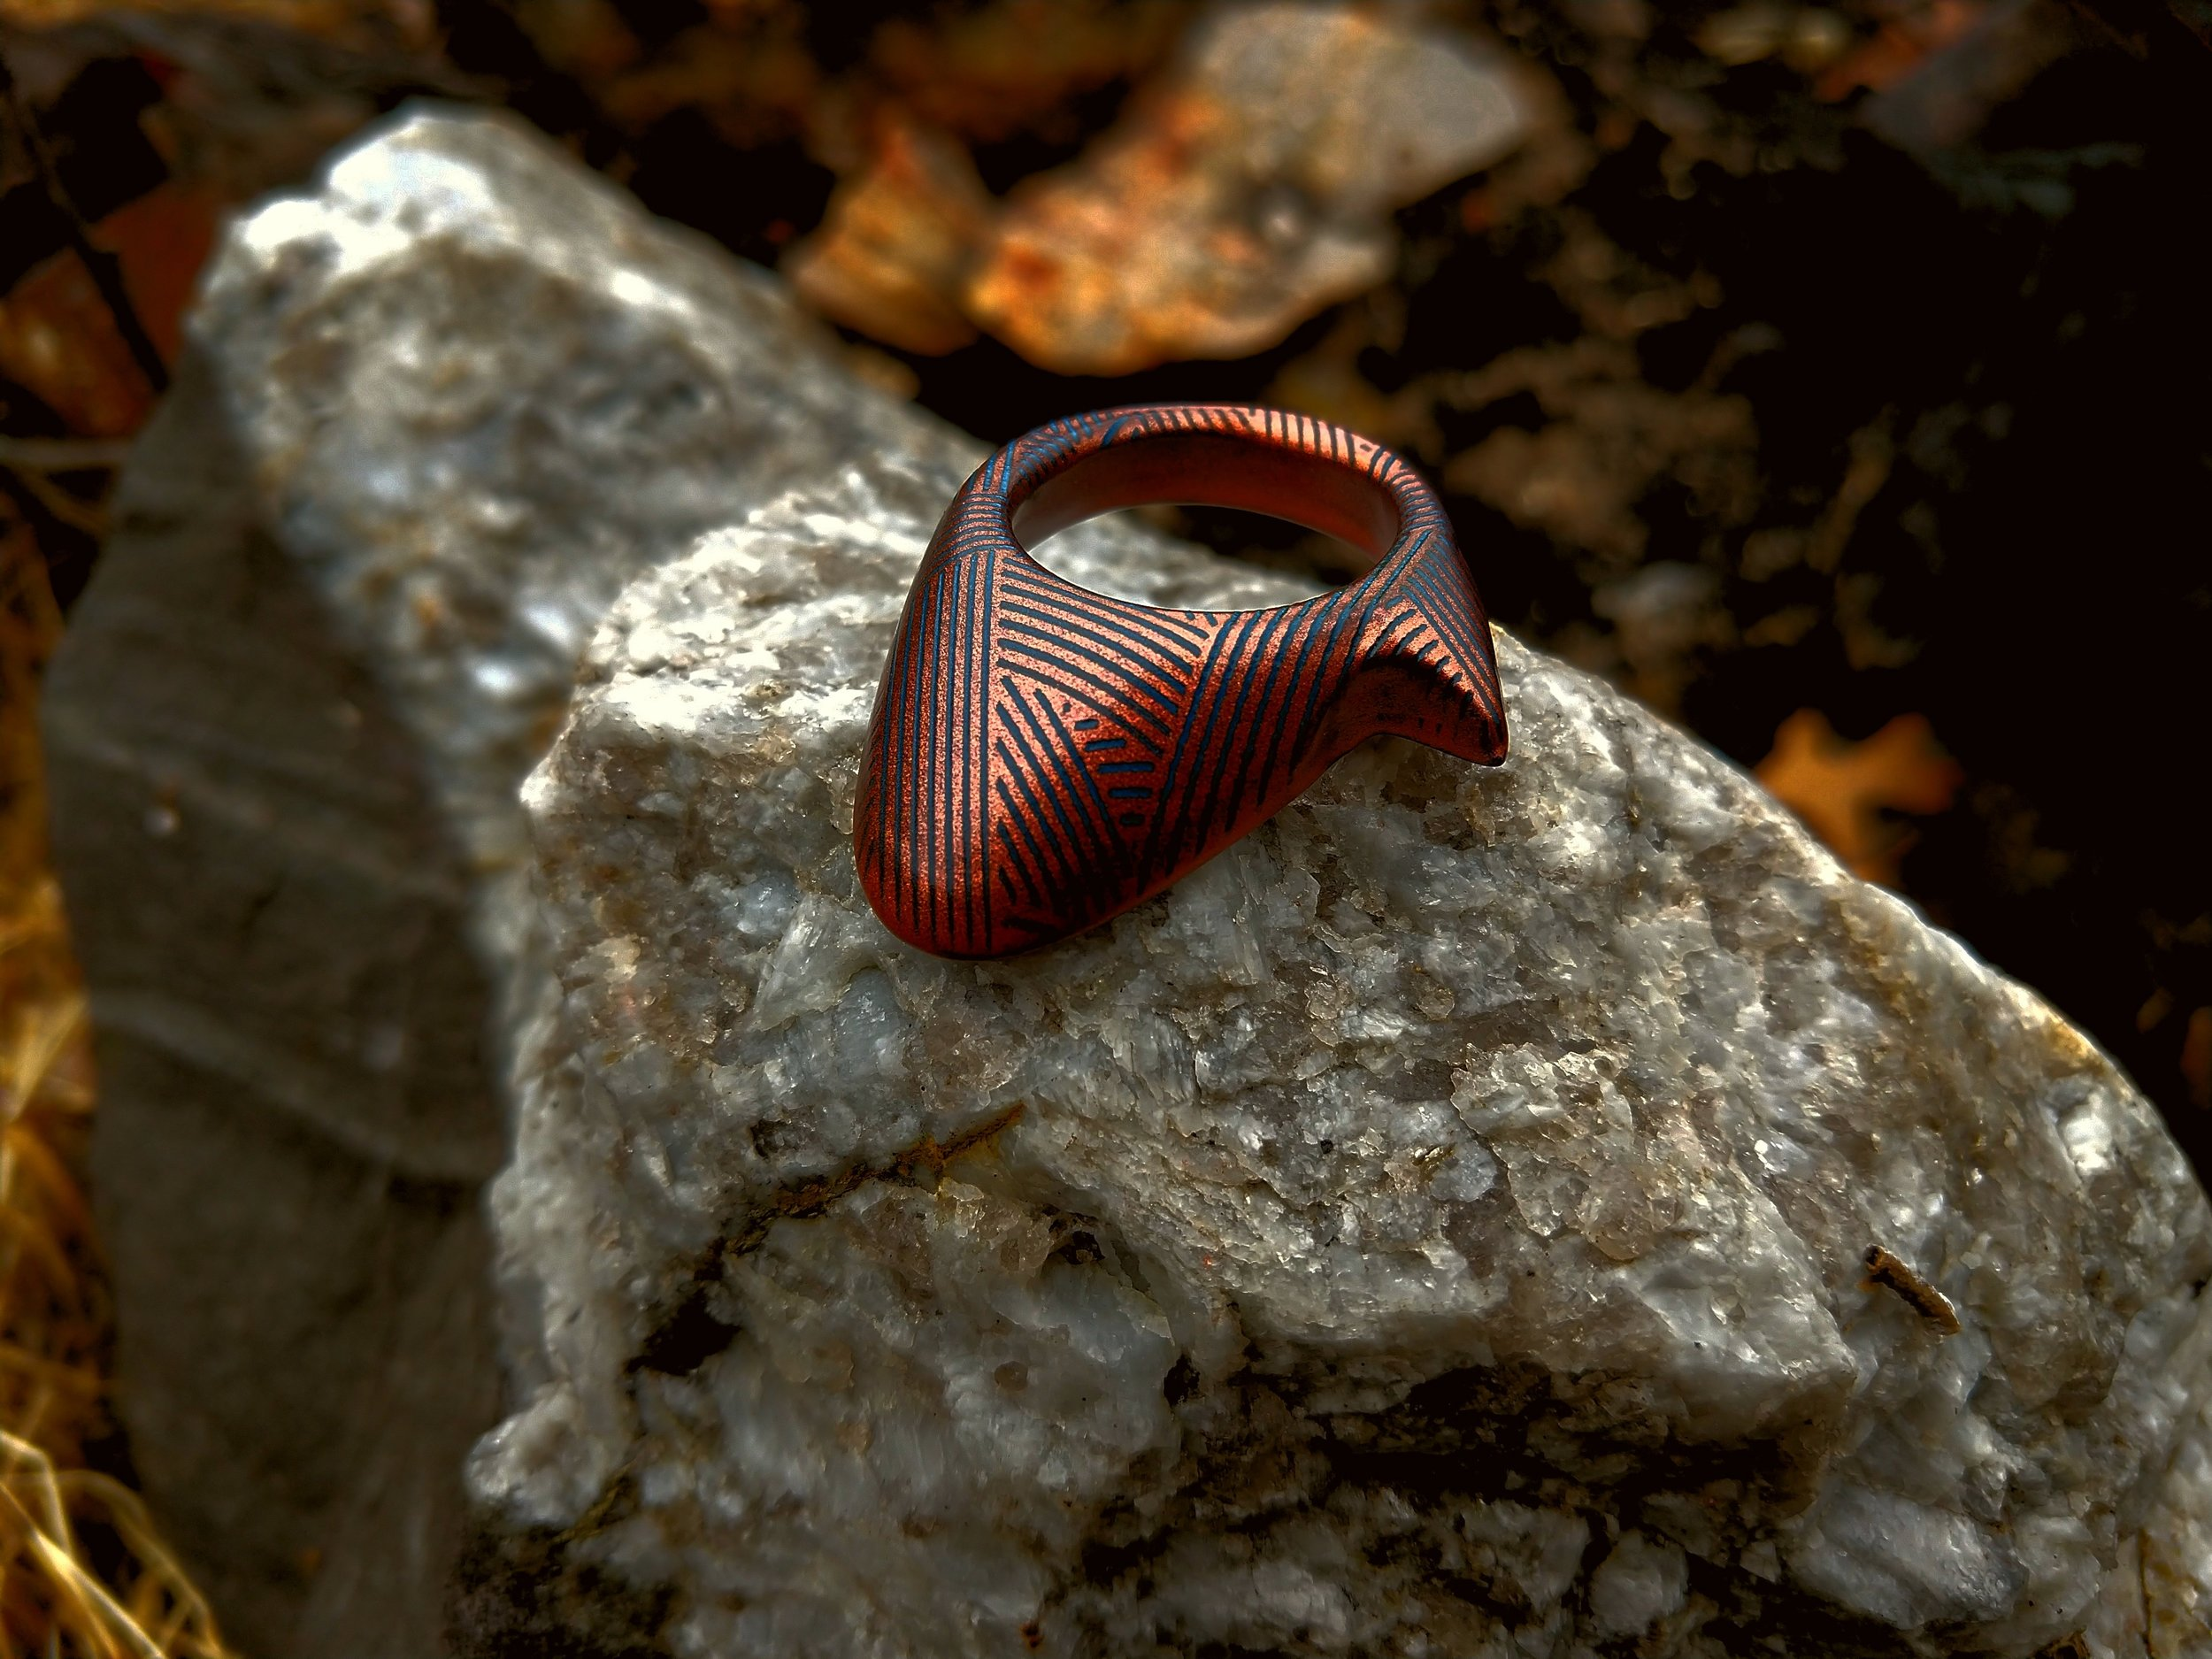 One of our Chinese Spur rings in Nocturnal Blue given a copper coating and weave pattern carving